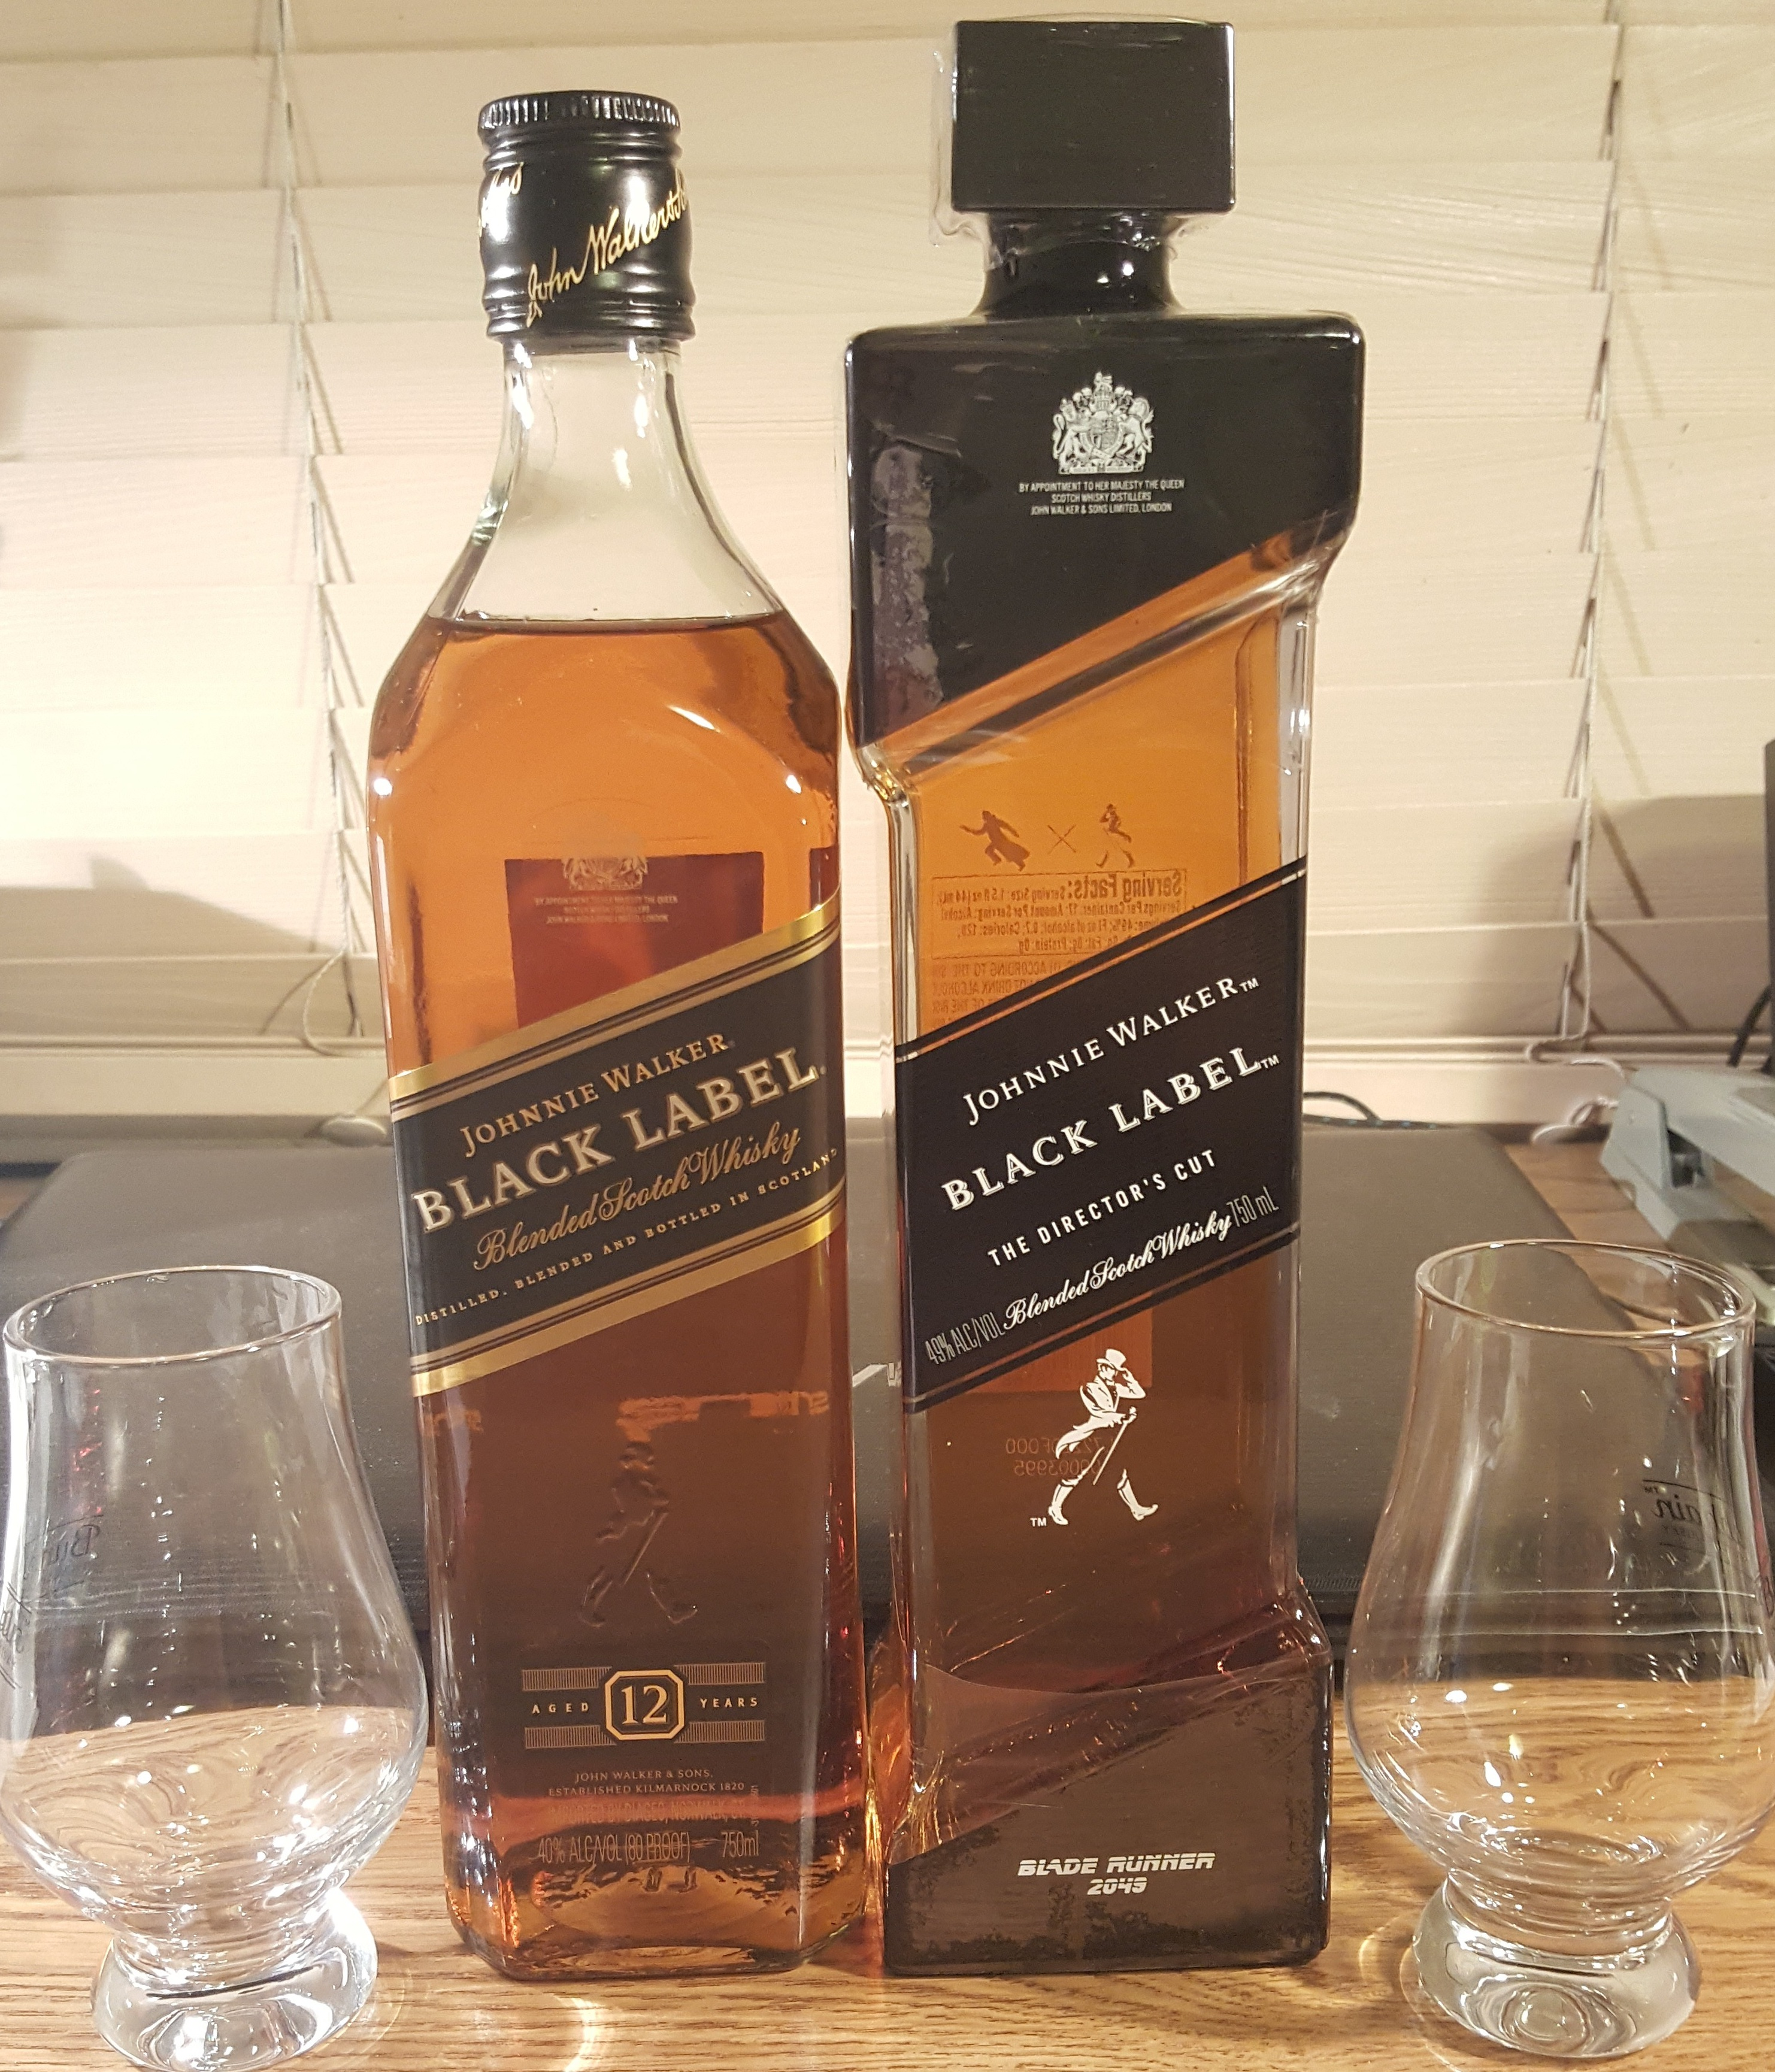 johnnie-walker-black-label-the-directors-cut-comparison-limited-edition